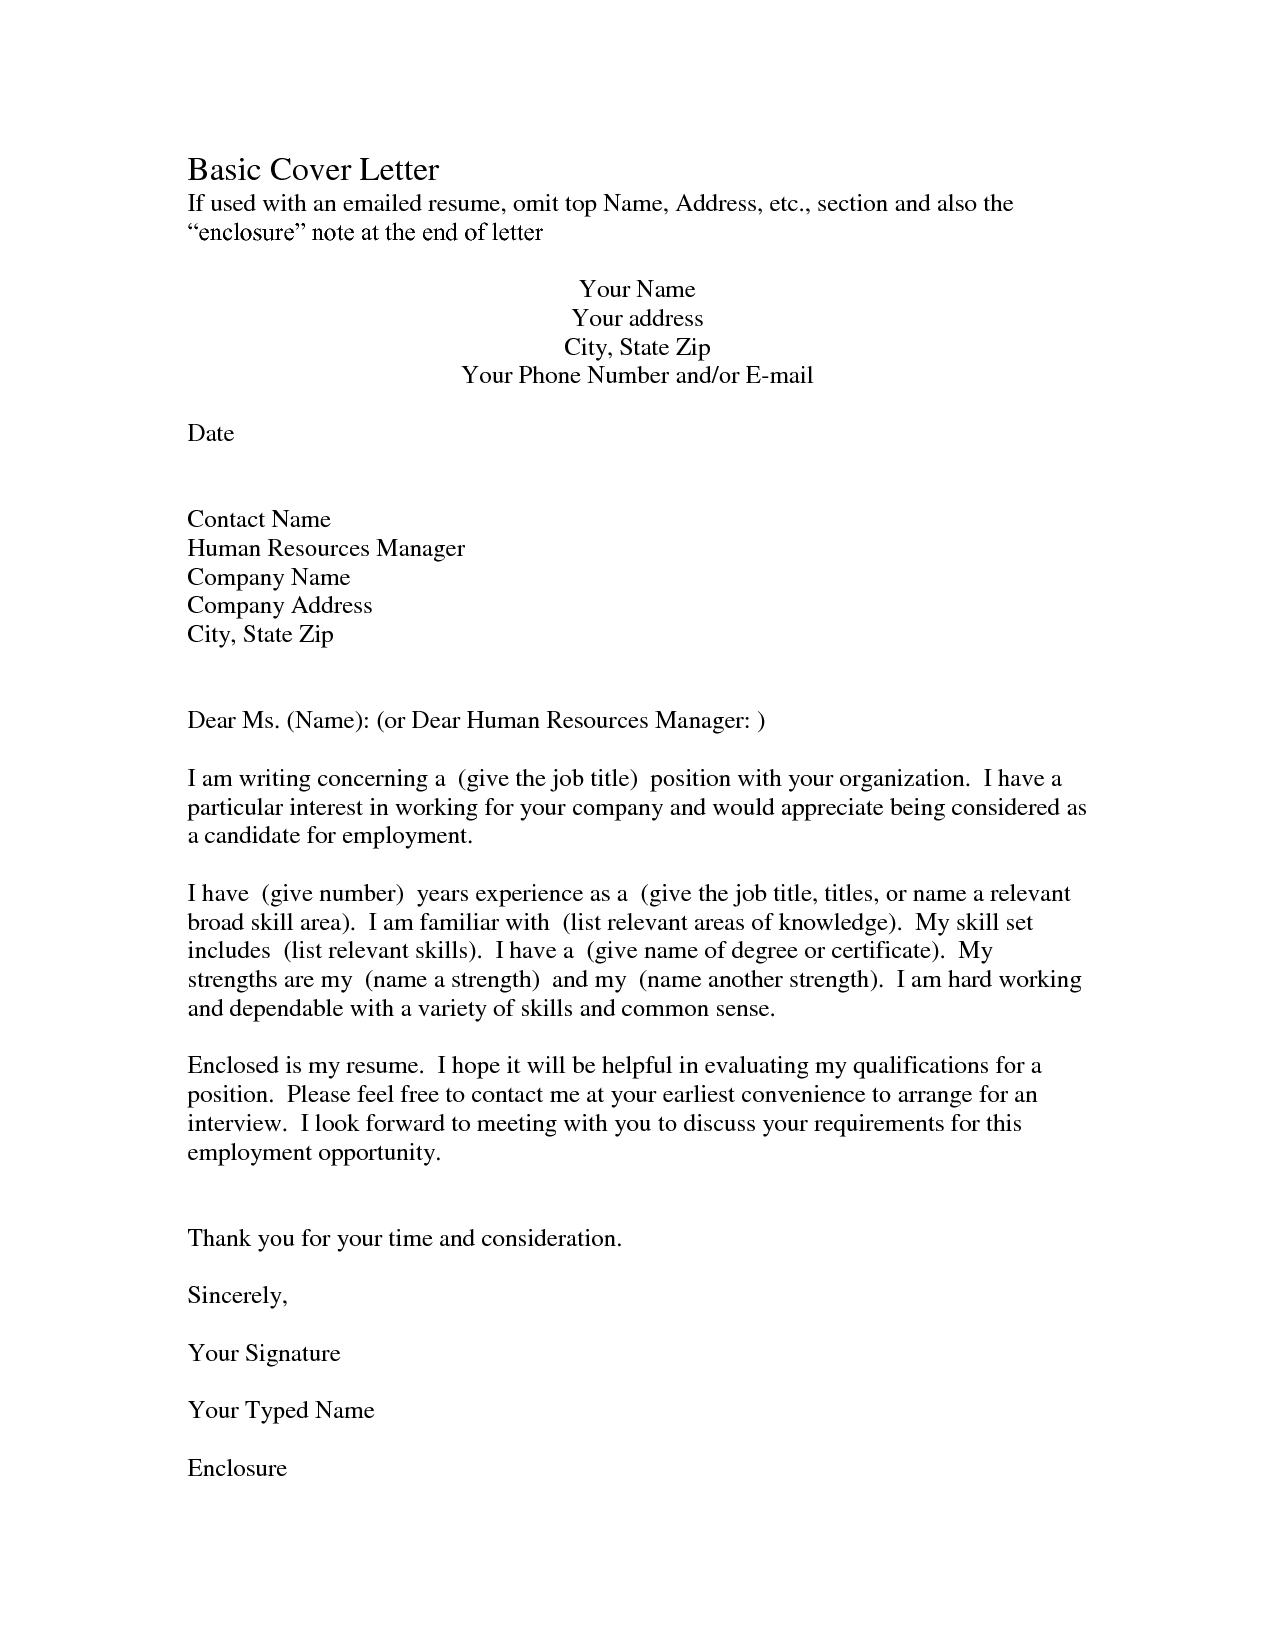 Genetic Counseling Letter Template - This Cover Letter Sample Shows How A Resumes for Teachers Can Help